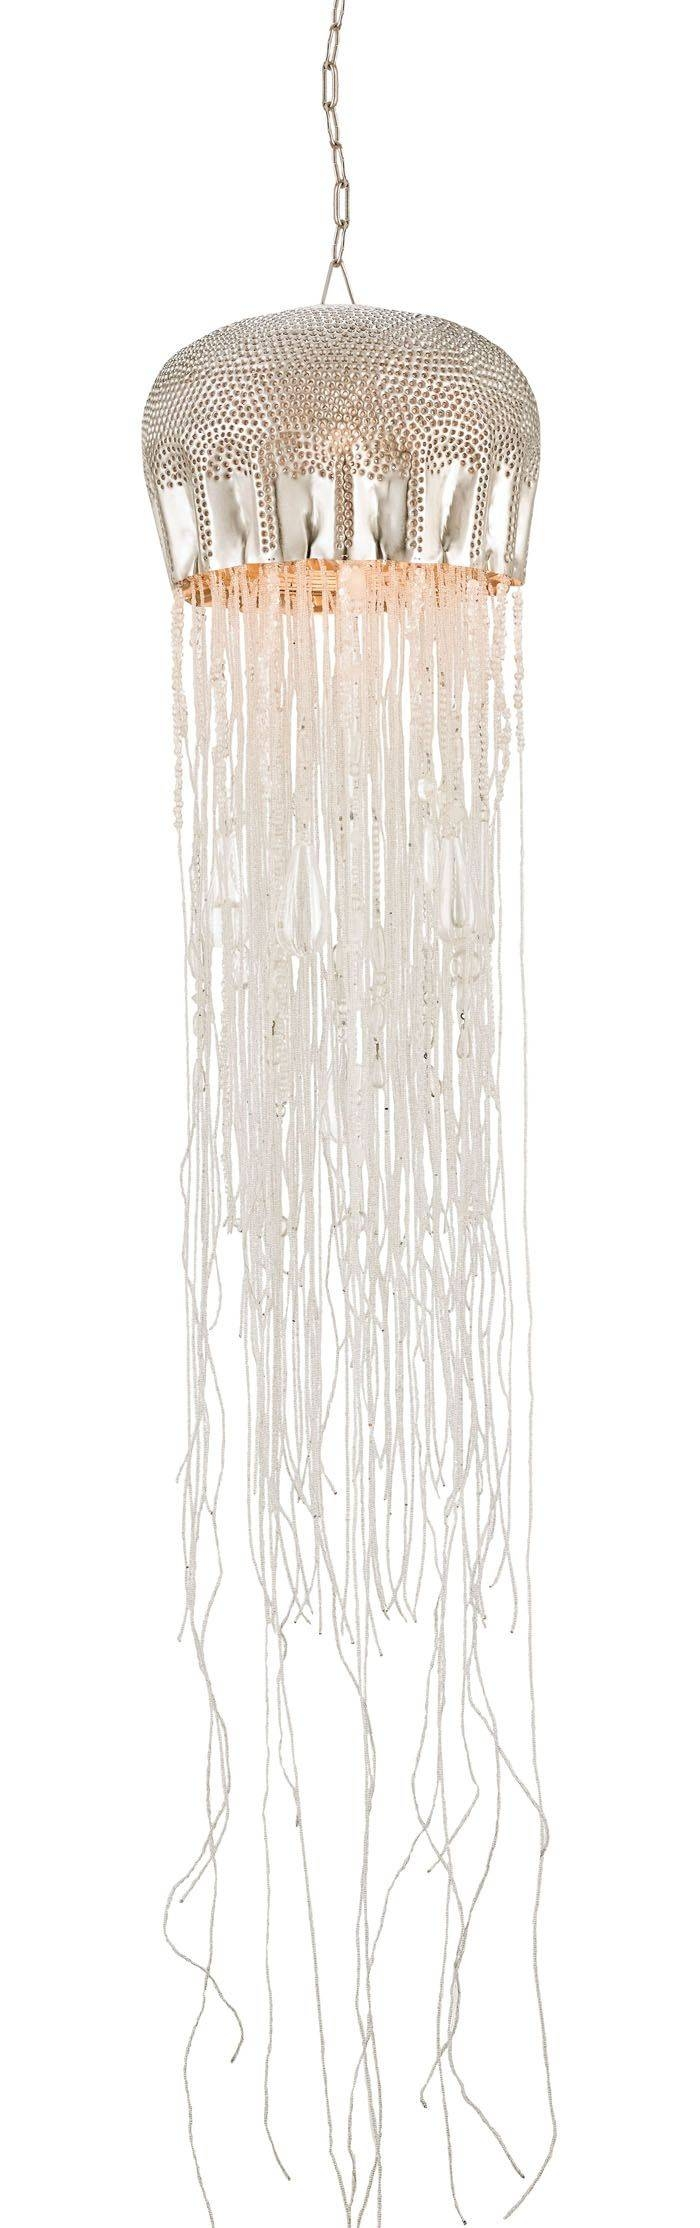 446 Best Let There Be Light! Images On Pinterest | Art Deco Art With Regard To Jellyfish Inspired Pendant Lights (Image 6 of 15)